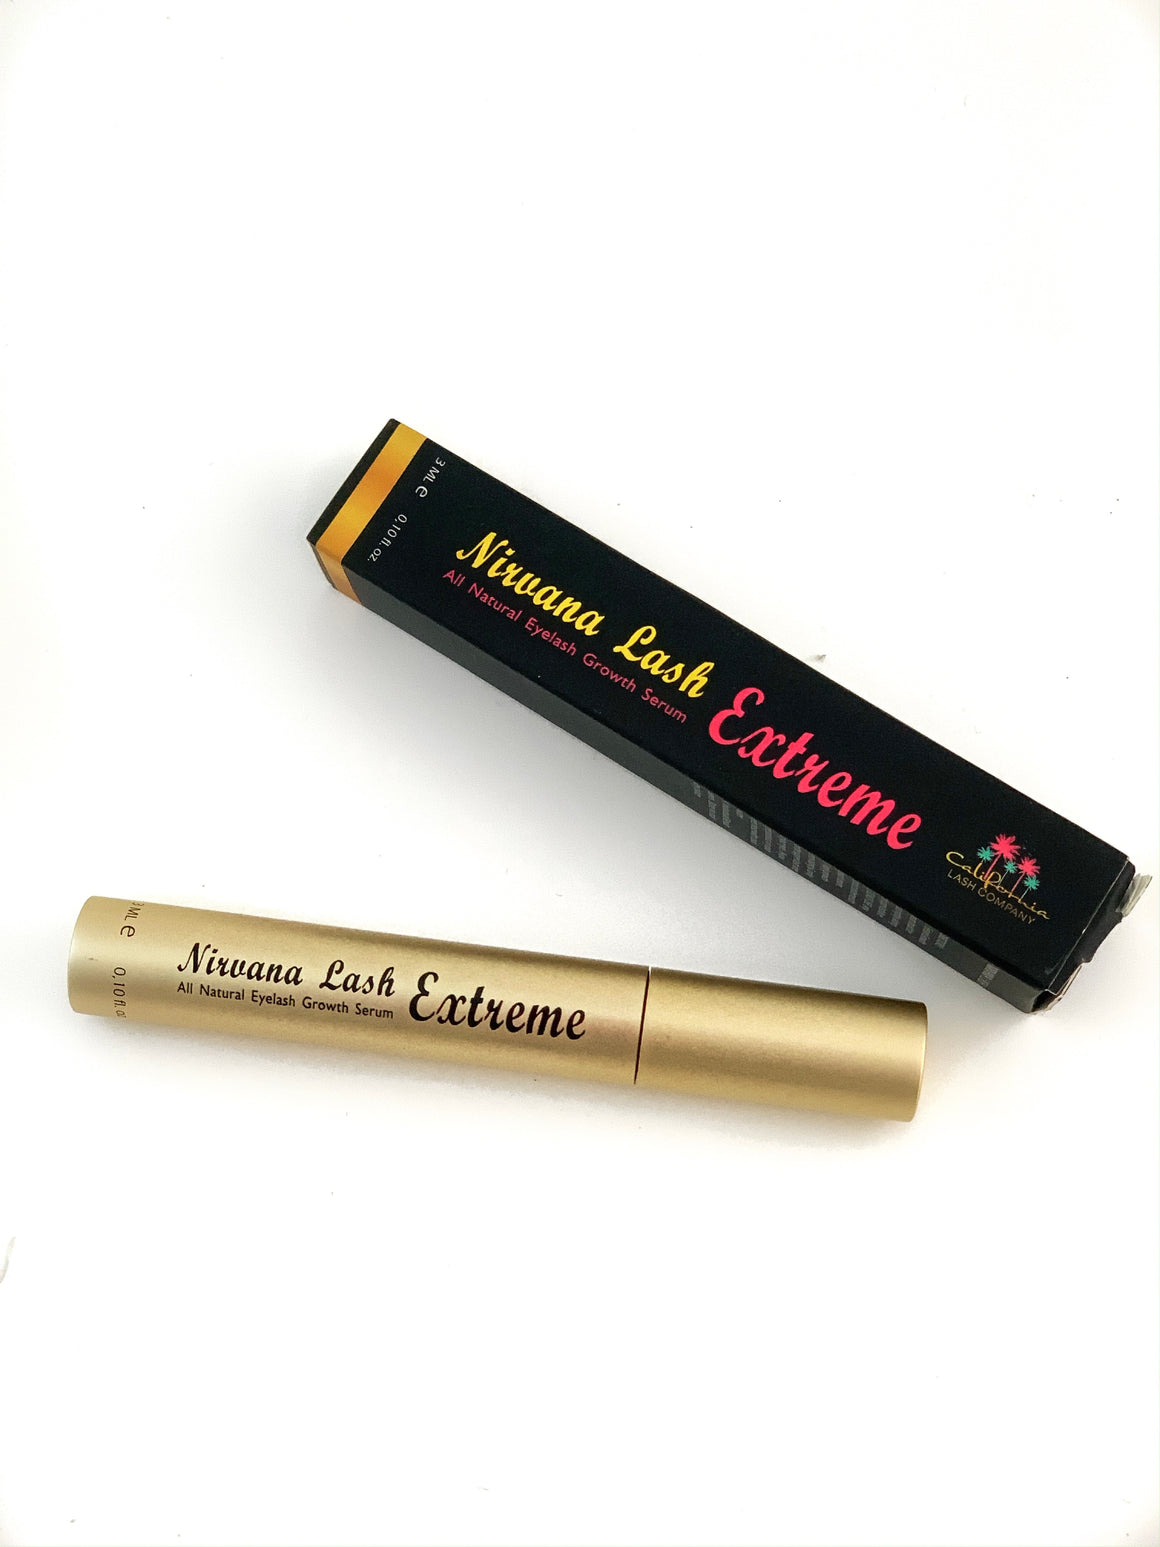 Nirvana Lash Extreme Lash Growth Serum